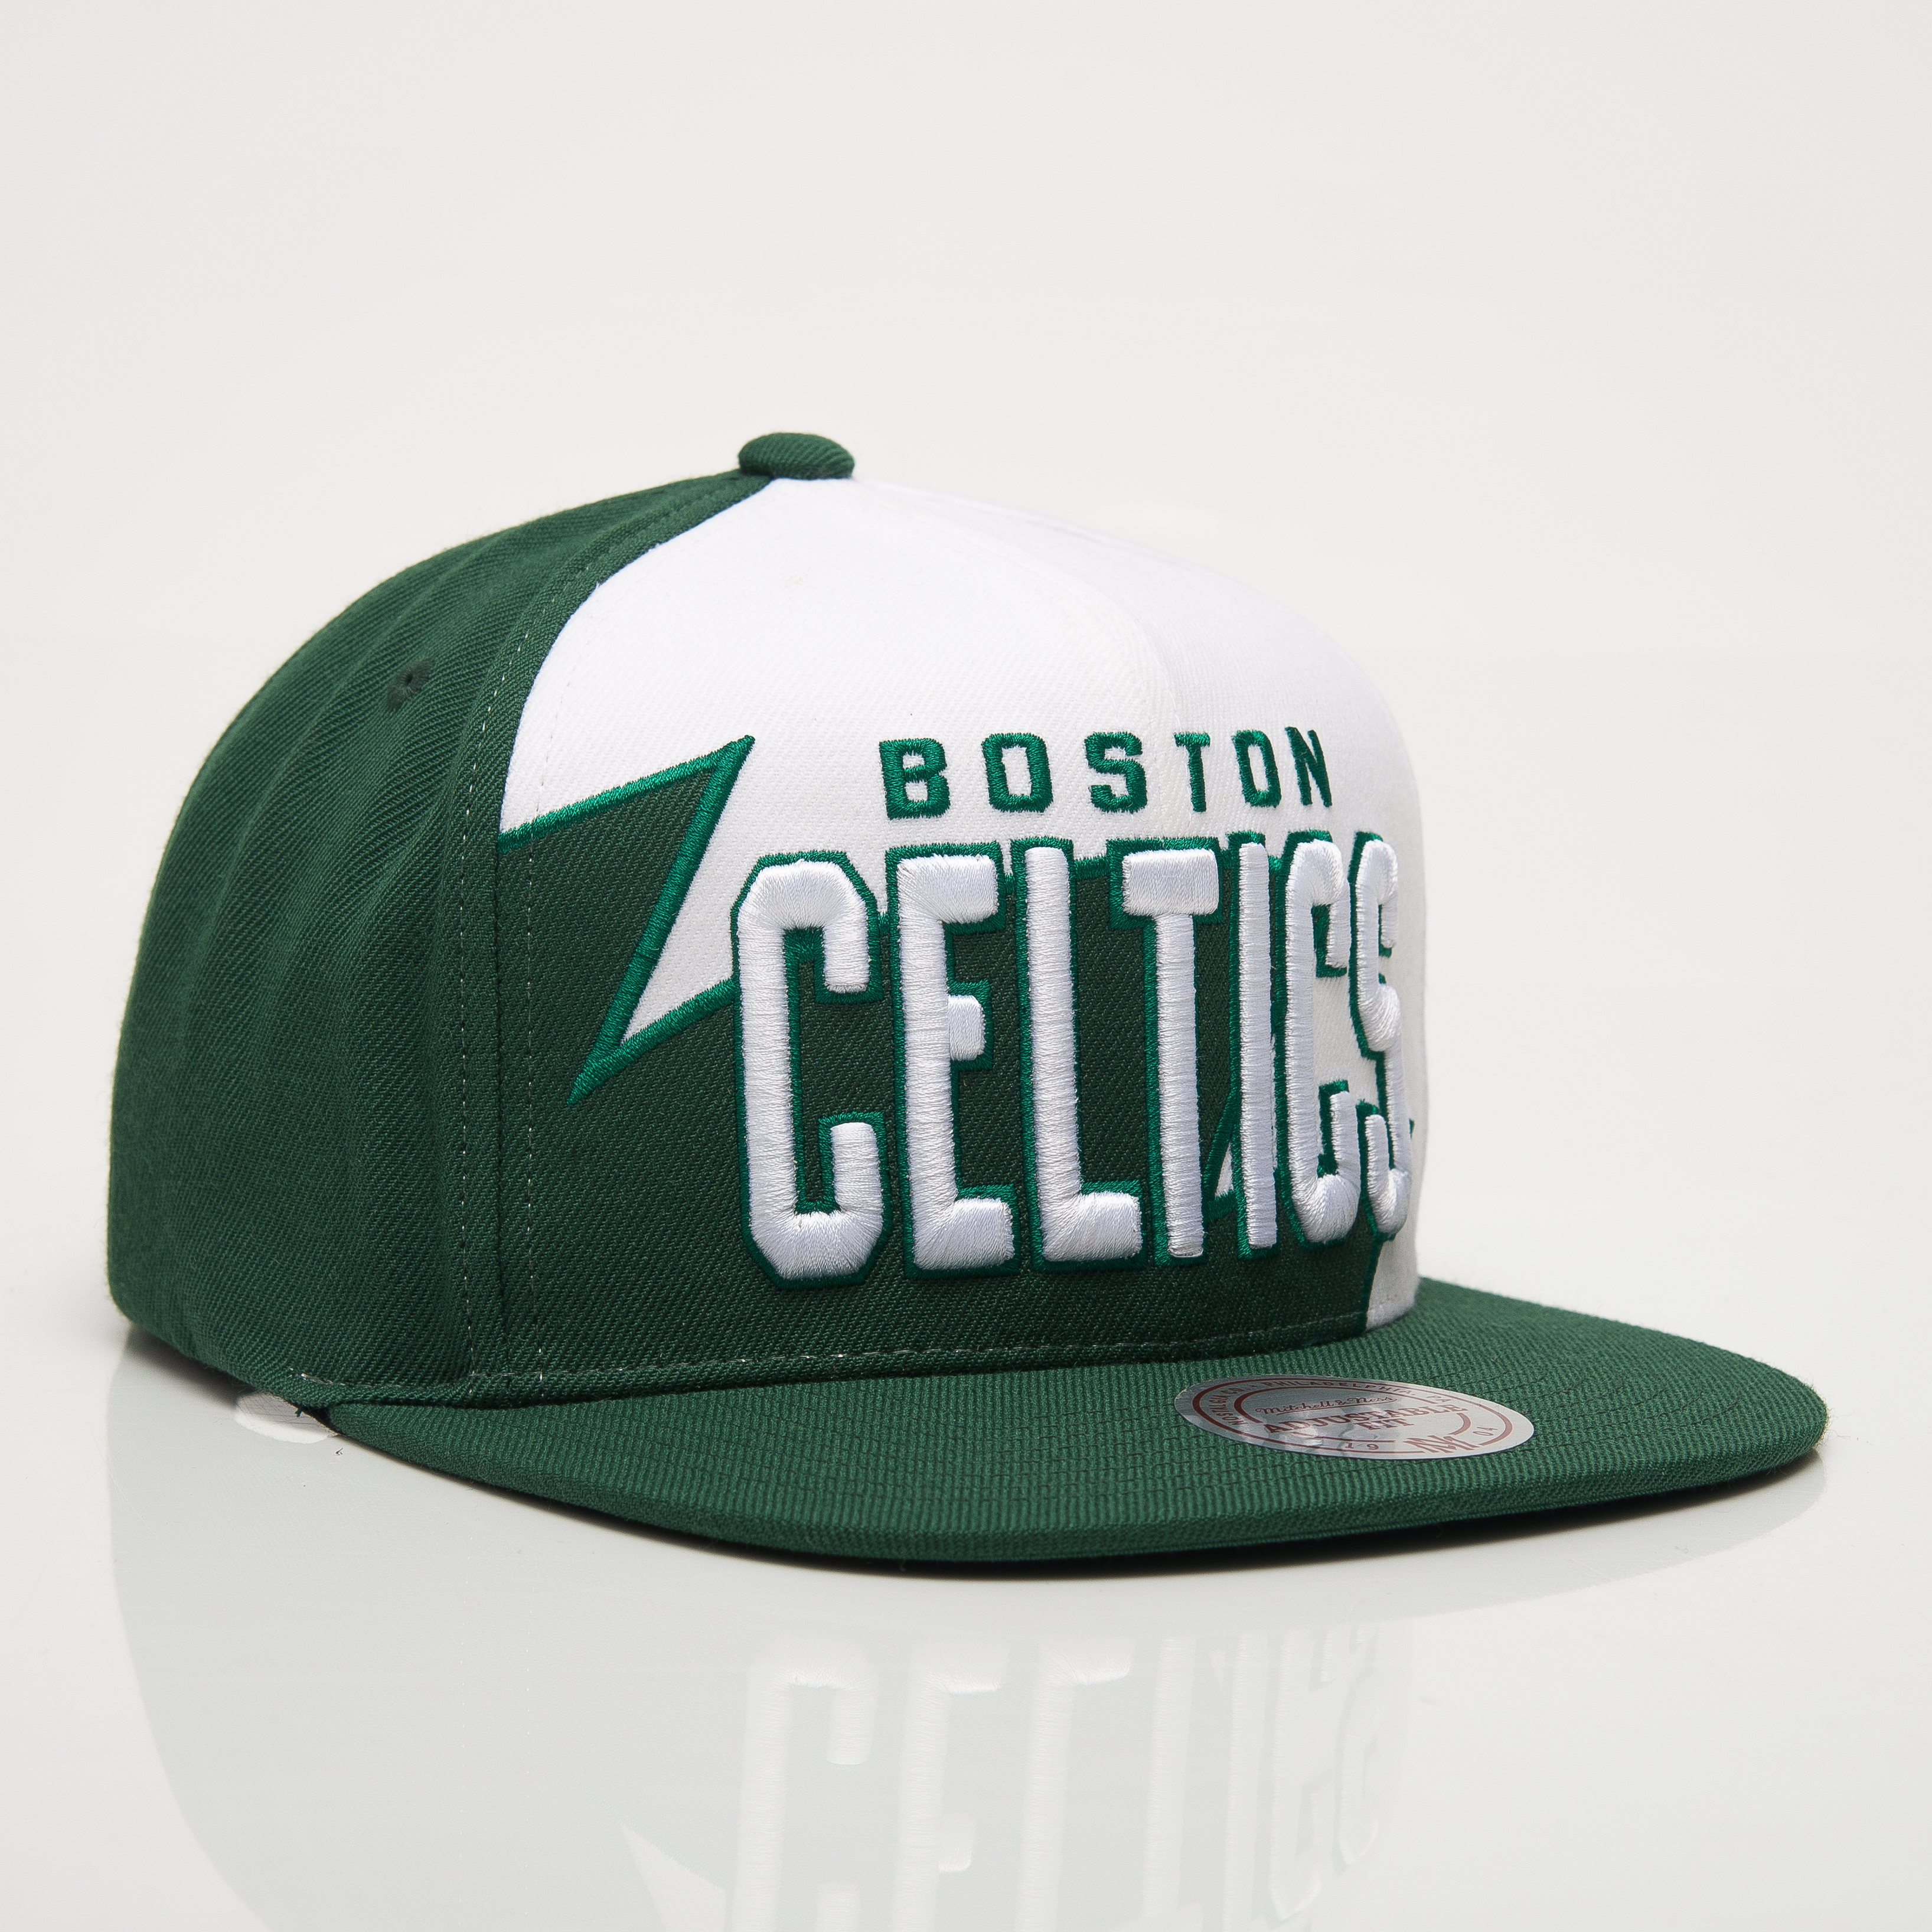 brand new 7a6aa 5285a Mitchell   Ness NBA Boston Celtics Shark Tooth Snapback Cap - NBA Shop  Boston Celtics Merchandise - Superfanas.lt